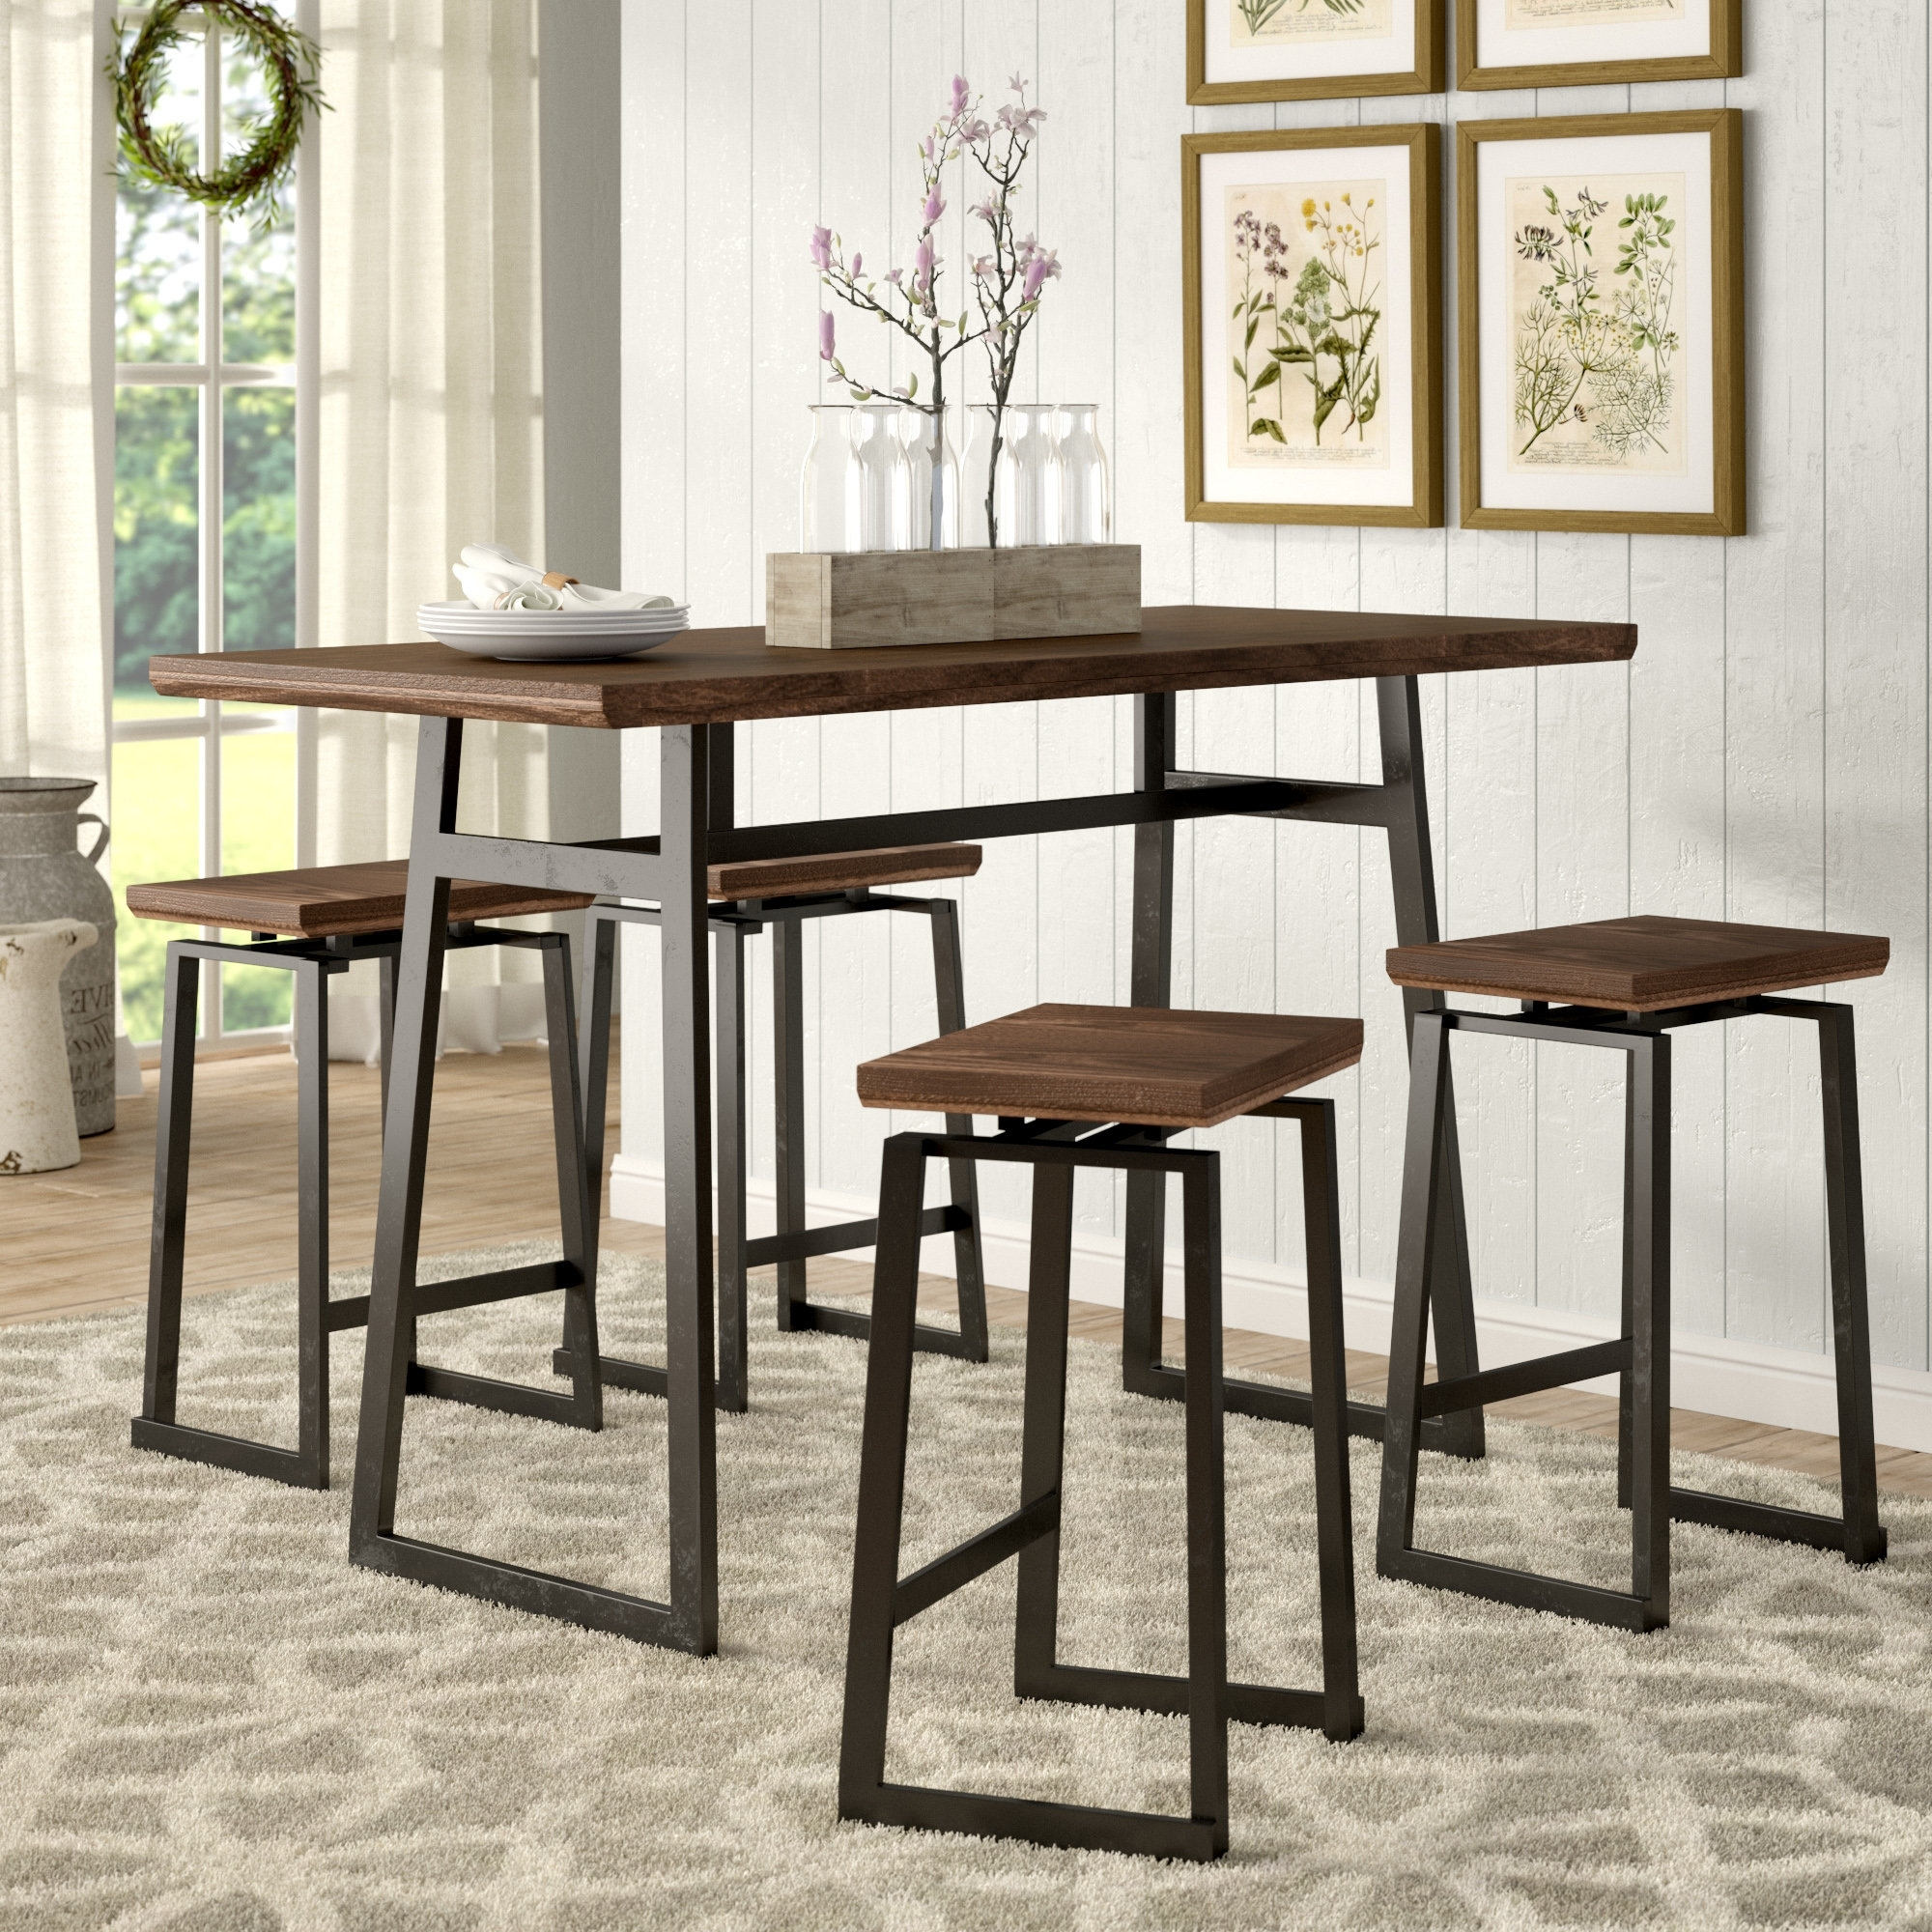 Jaxon 5 Piece Extension Counter Sets With Fabric Stools Regarding 2018 Gracie Oaks Platane Industrial 5 Piece Counter Height Dining Set (View 16 of 25)